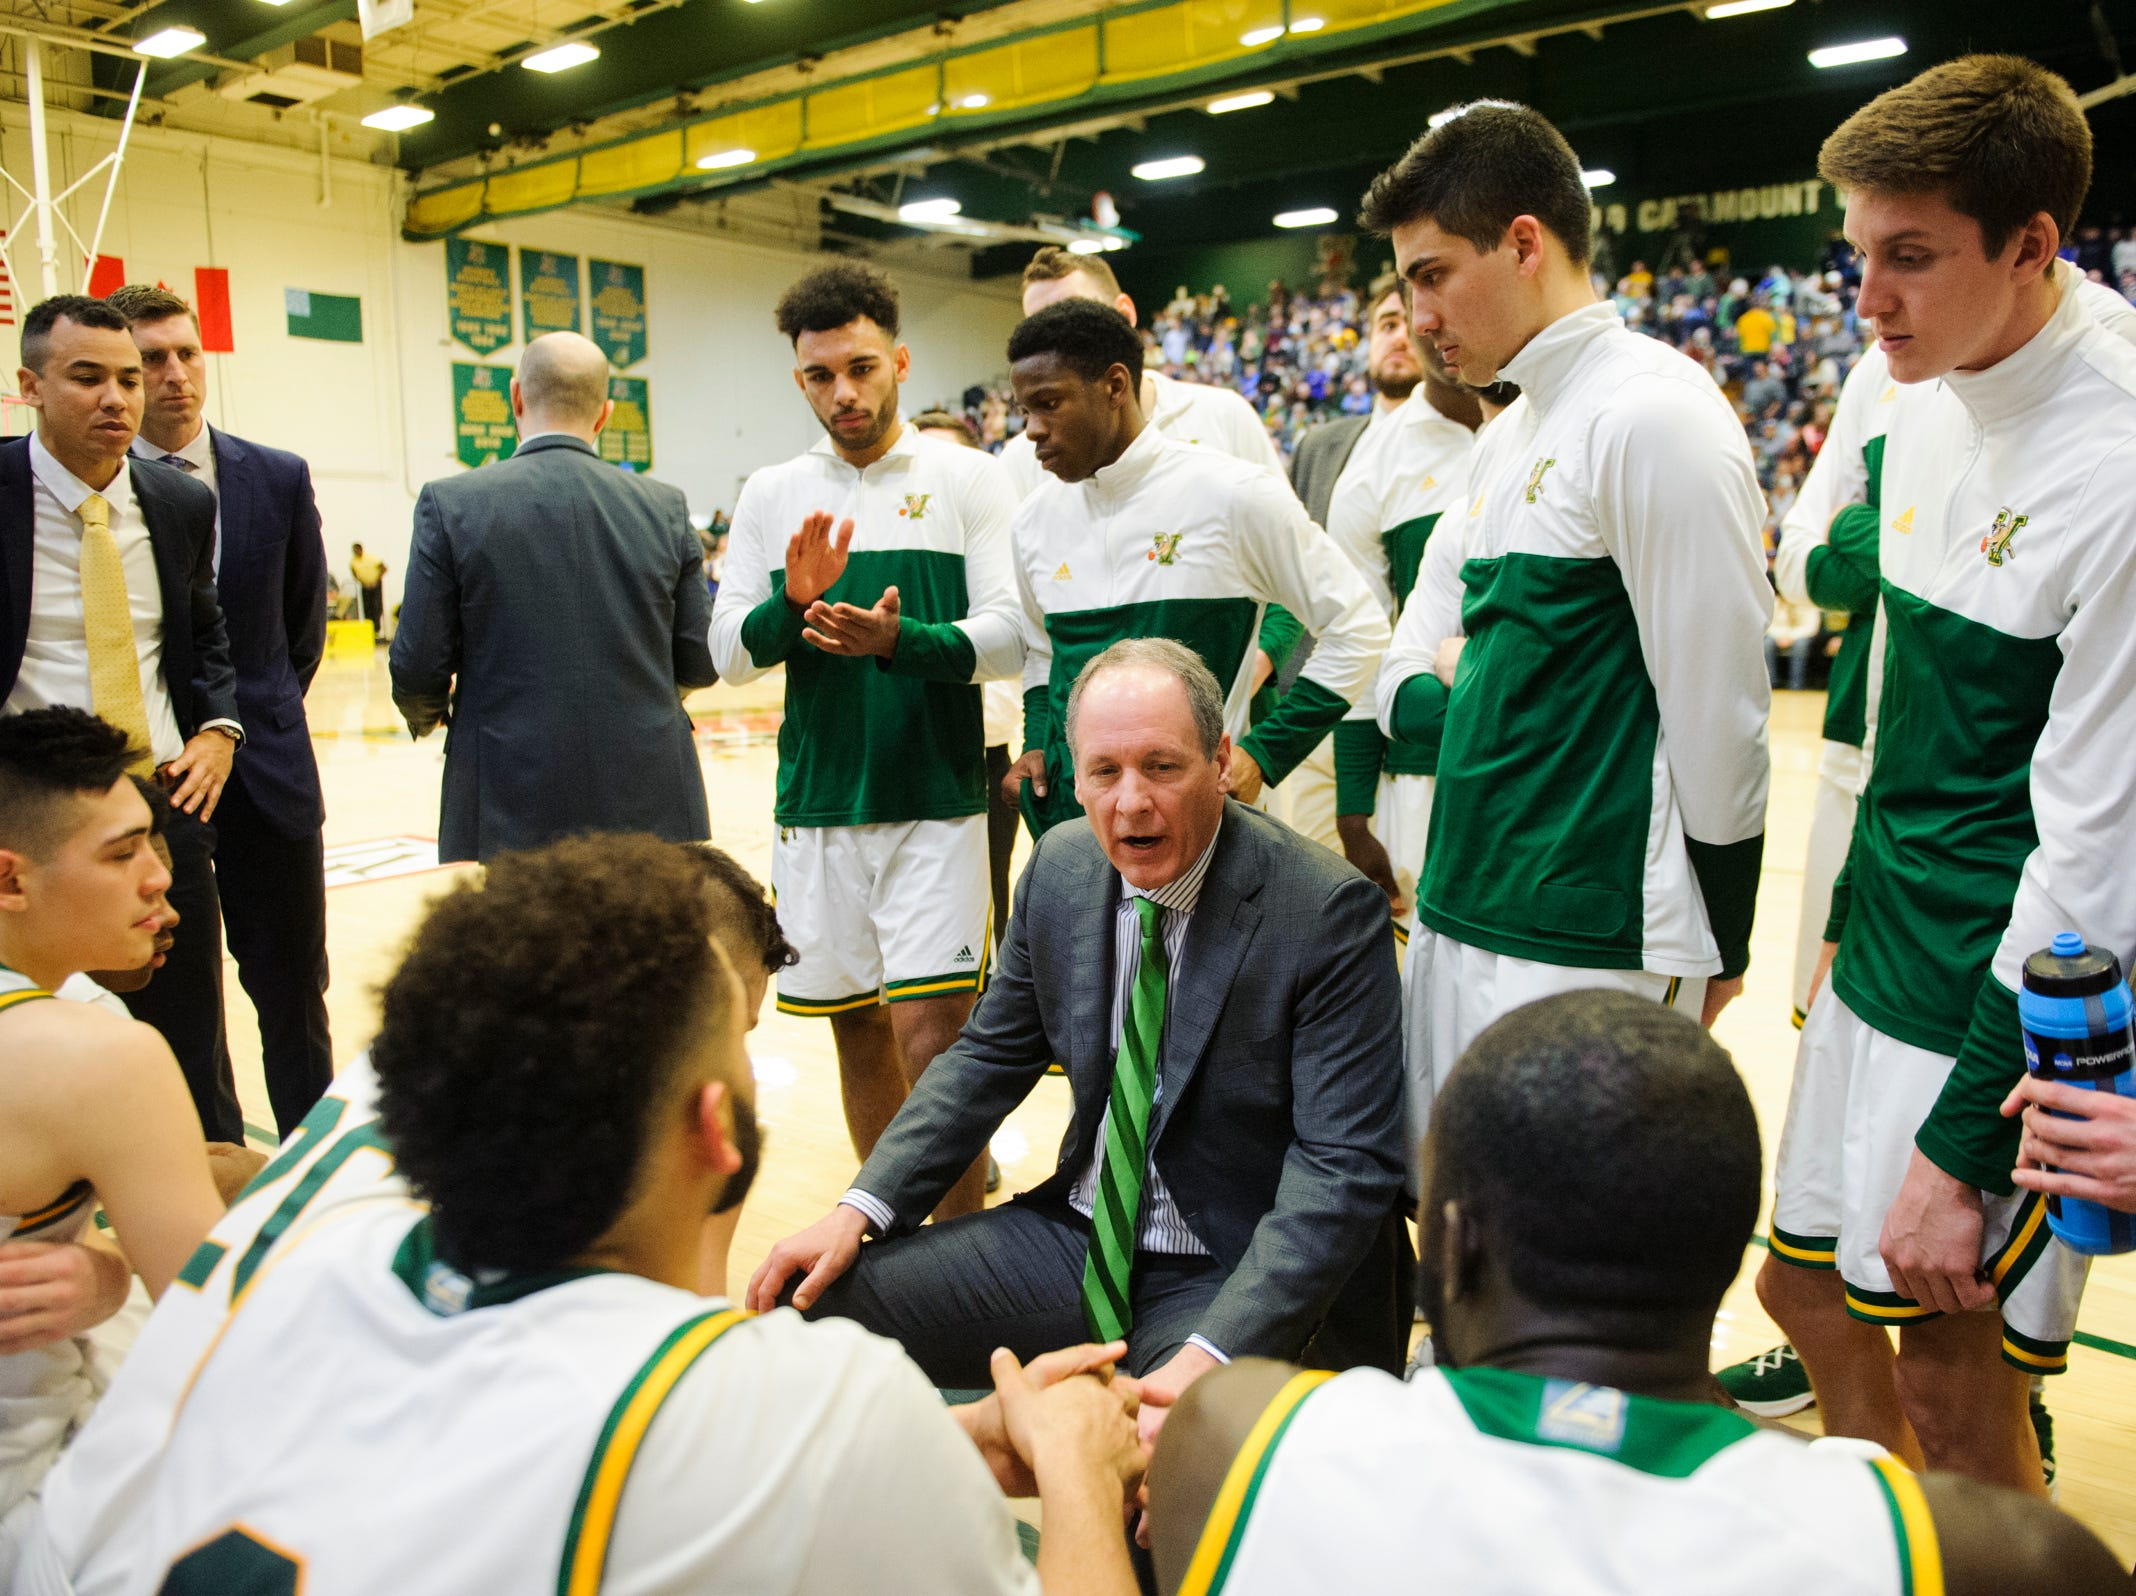 Vermont head coach John Becker talks to the team during a time out in the men's basketball game between the Albany Great Danes and the Vermont Catamounts at Patrick Gym on Saturday February 9, 2019 in Burlington, Vermont.